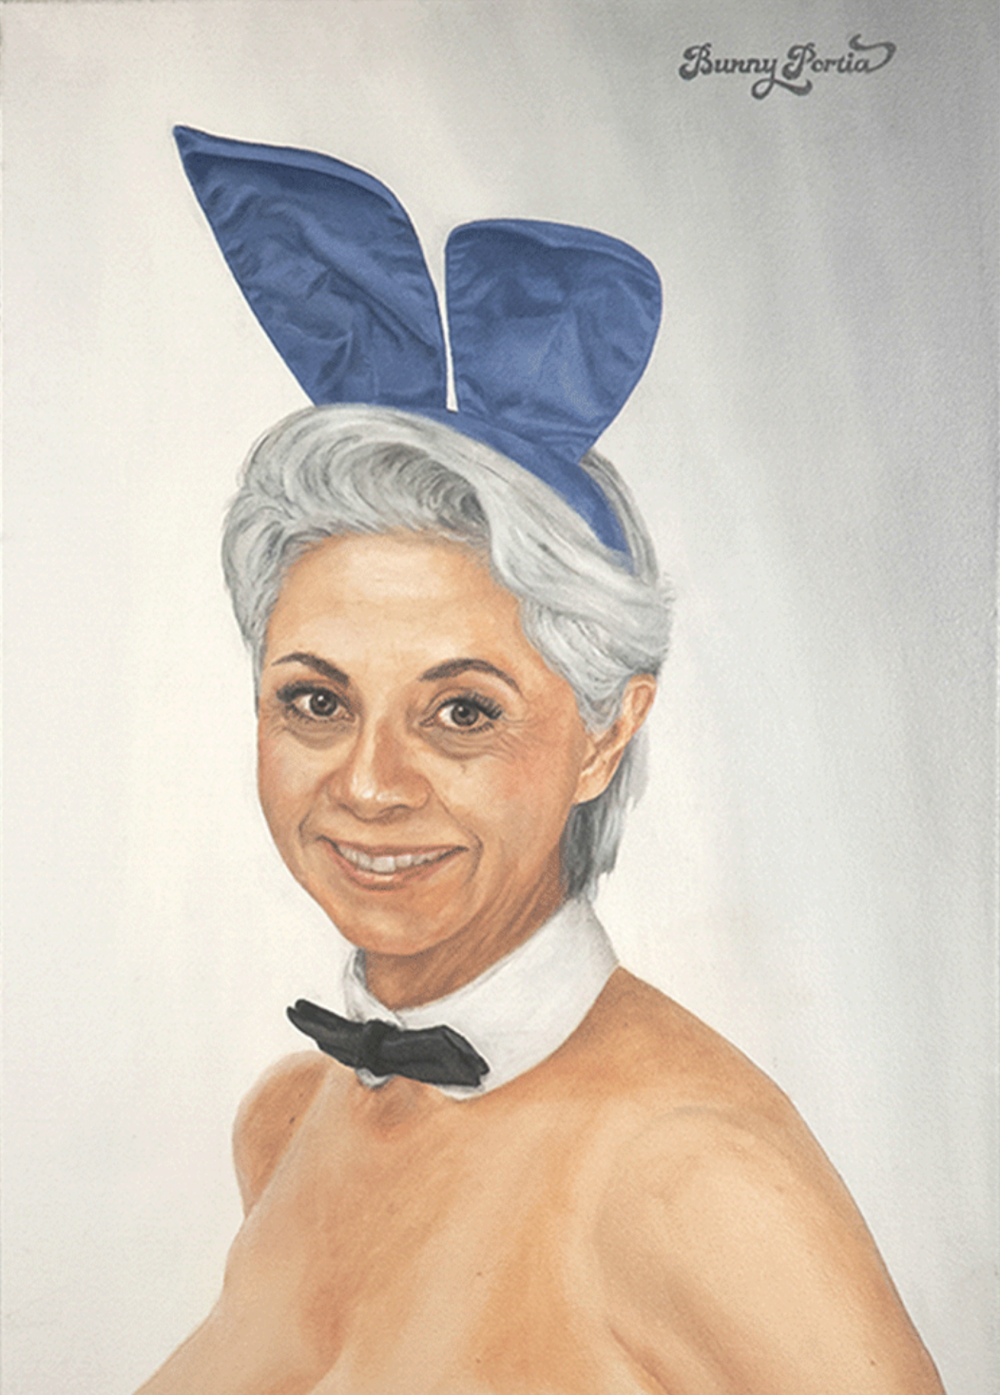 Bunny Portia - PAINTER